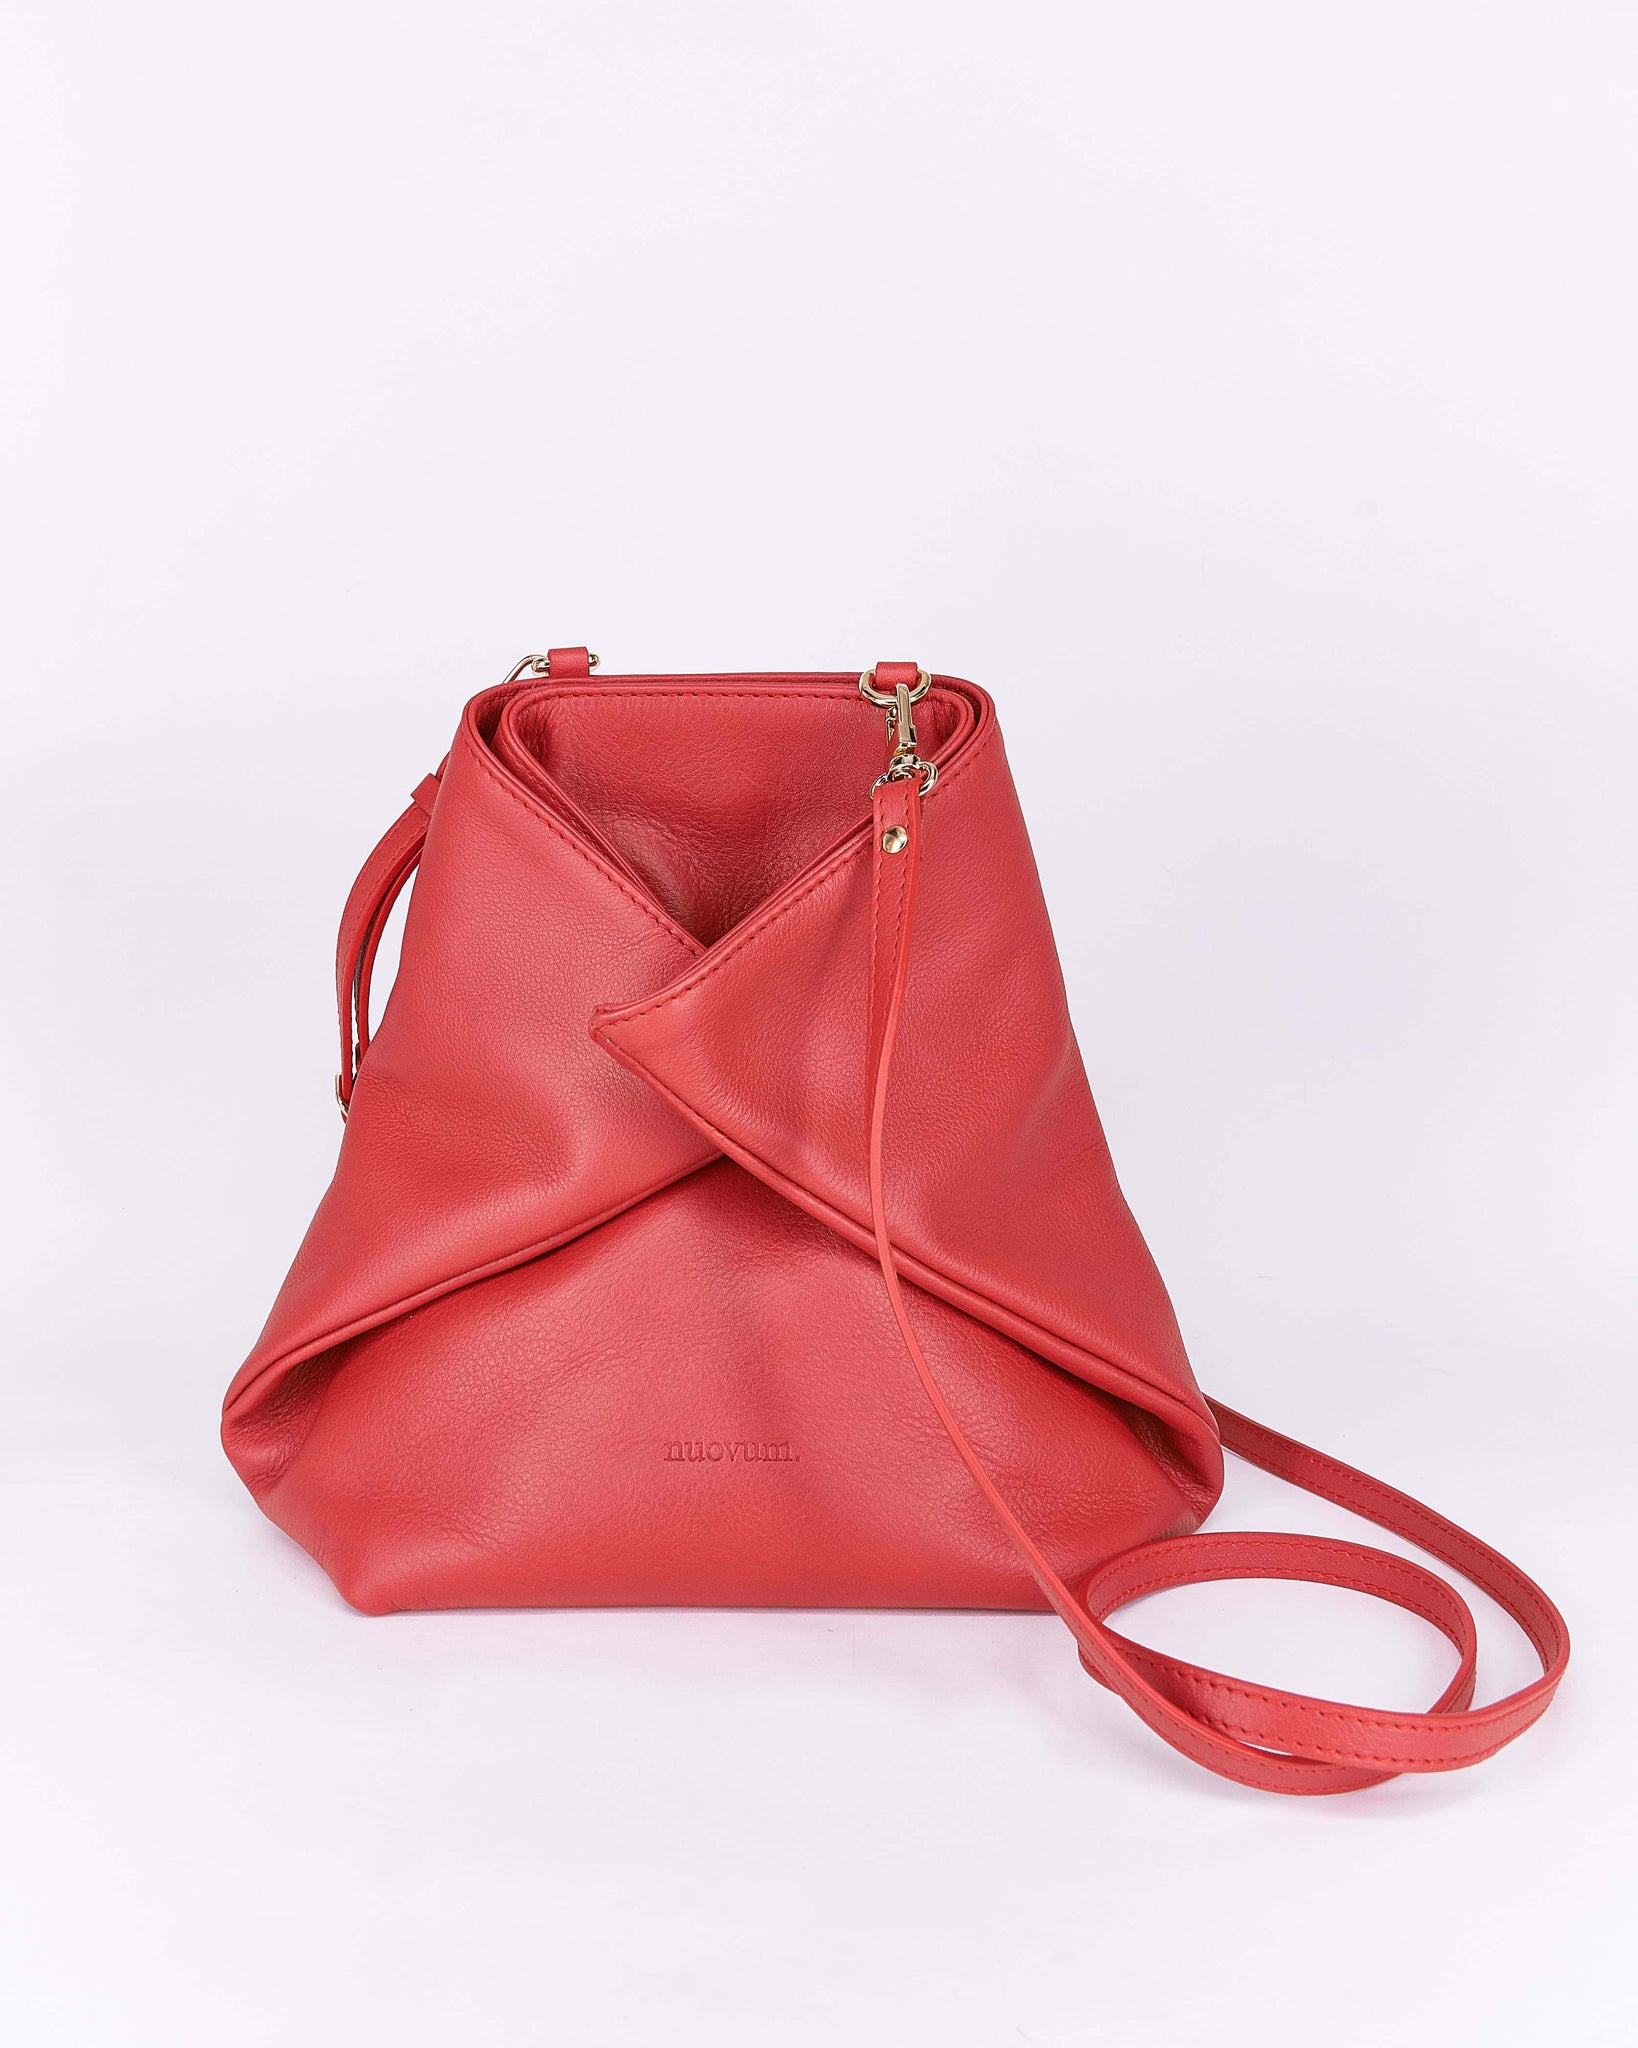 Bigcandy-Red-Front2-Leather-Bag-Nuovum-Localdesigners-Handmade-Madeinbarcelona